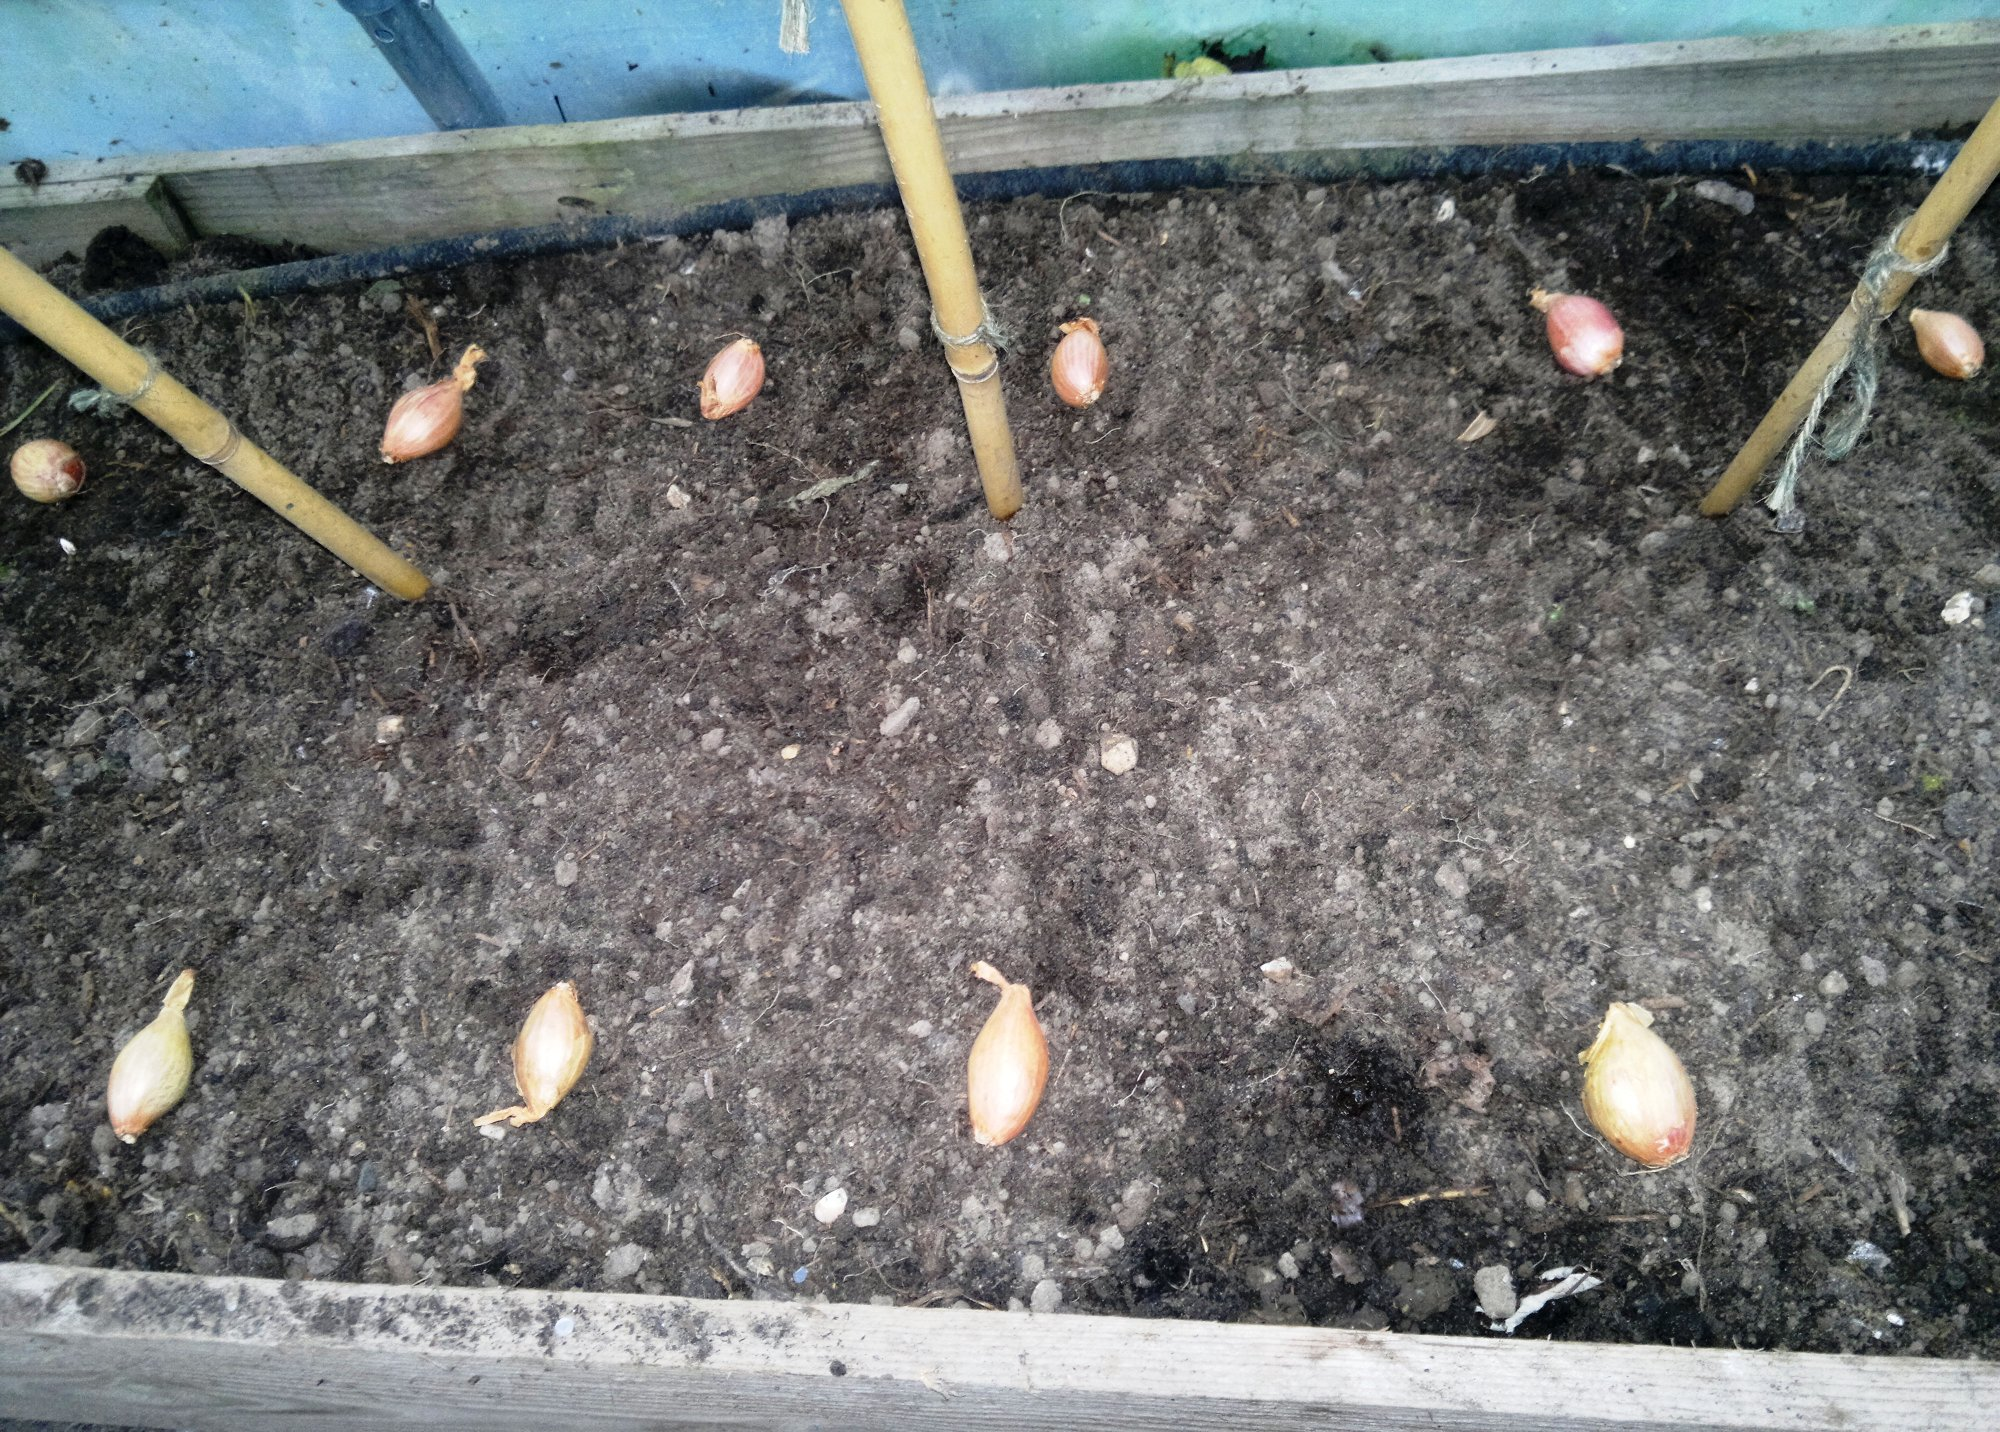 Shallots are given a little more space to develop